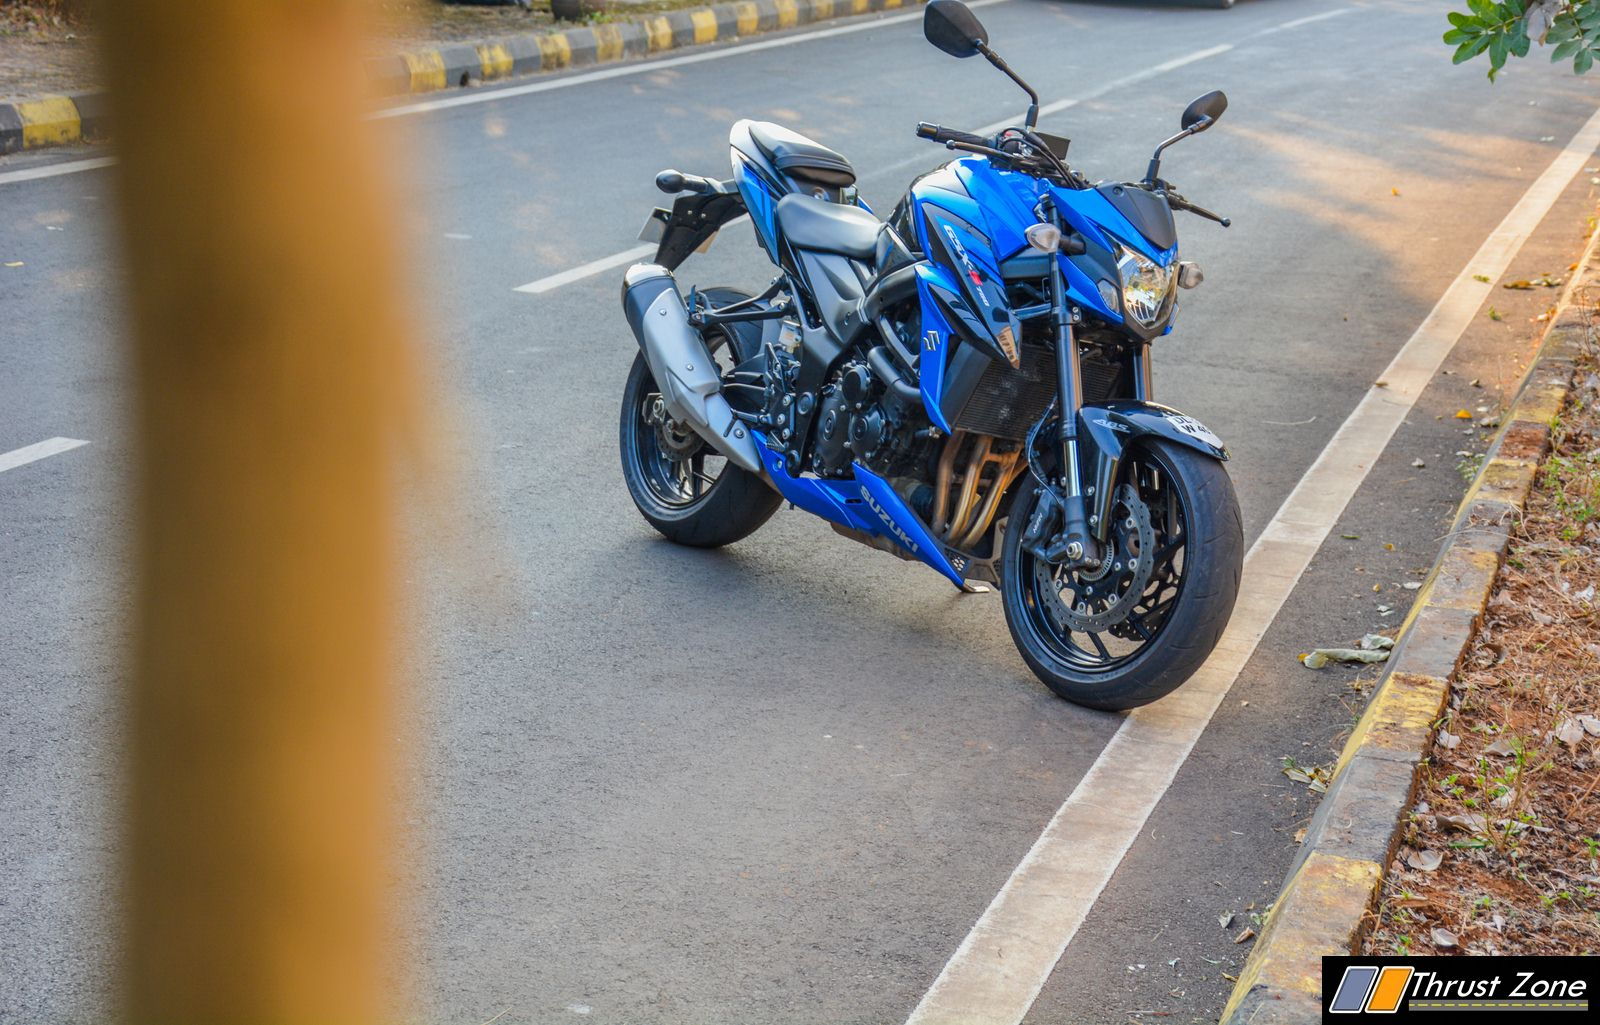 https://www.thrustzone.com/wp-content/uploads/2018/12/2018-Suzuki-GSX-750-INDIA-Review-27.jpg